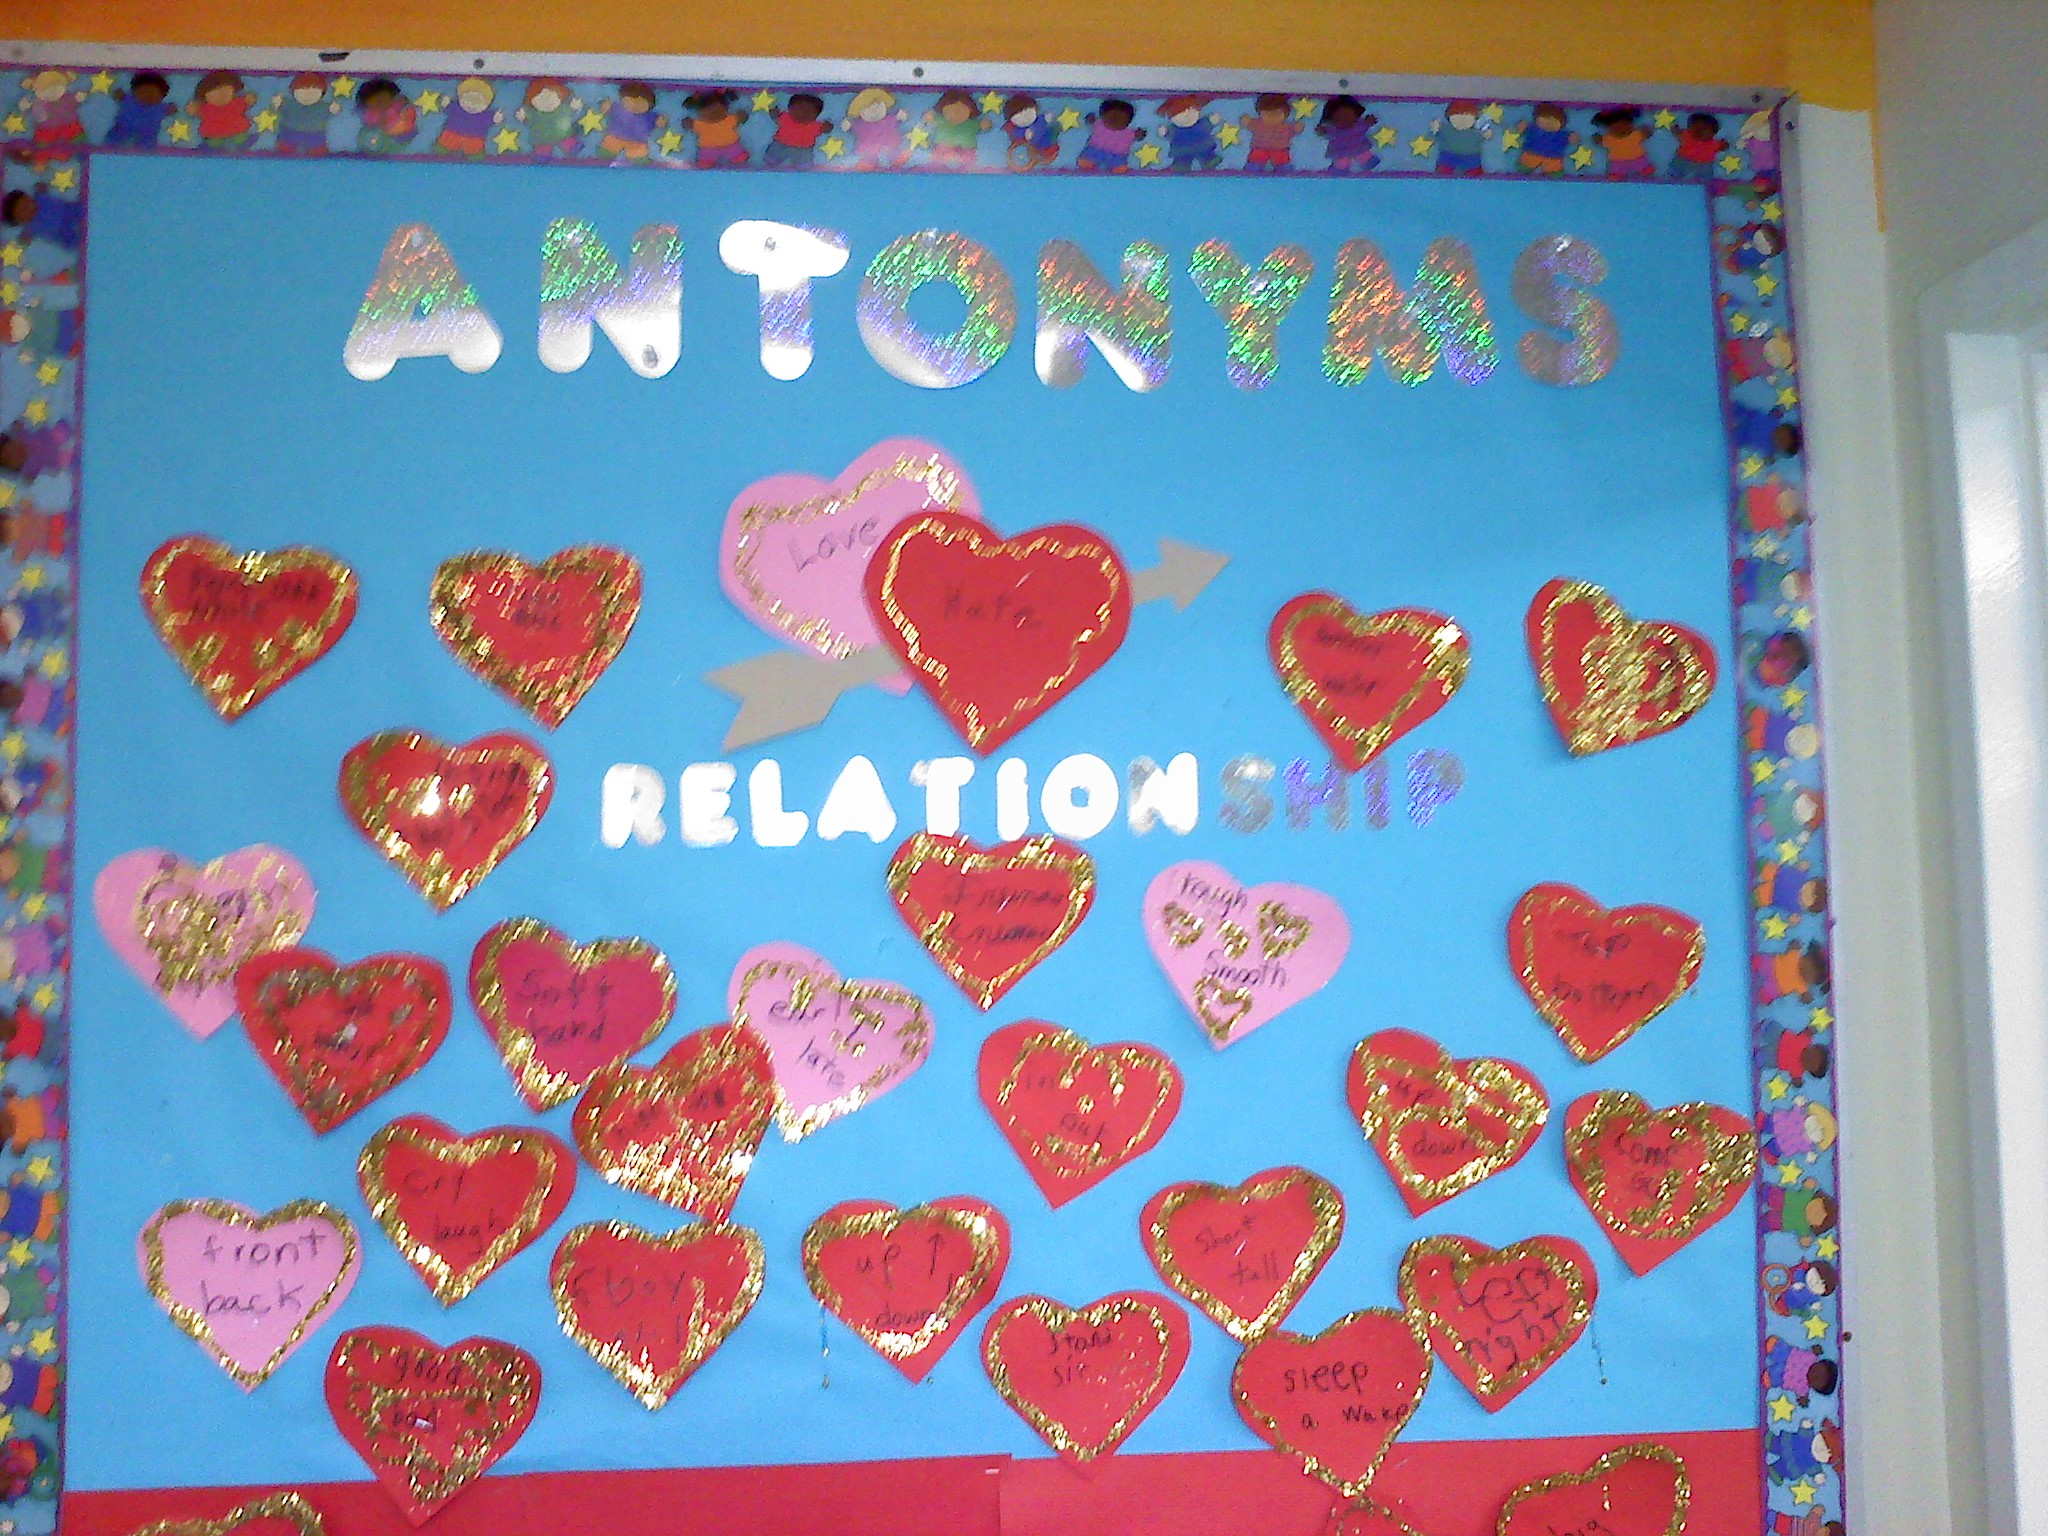 The Antonym board